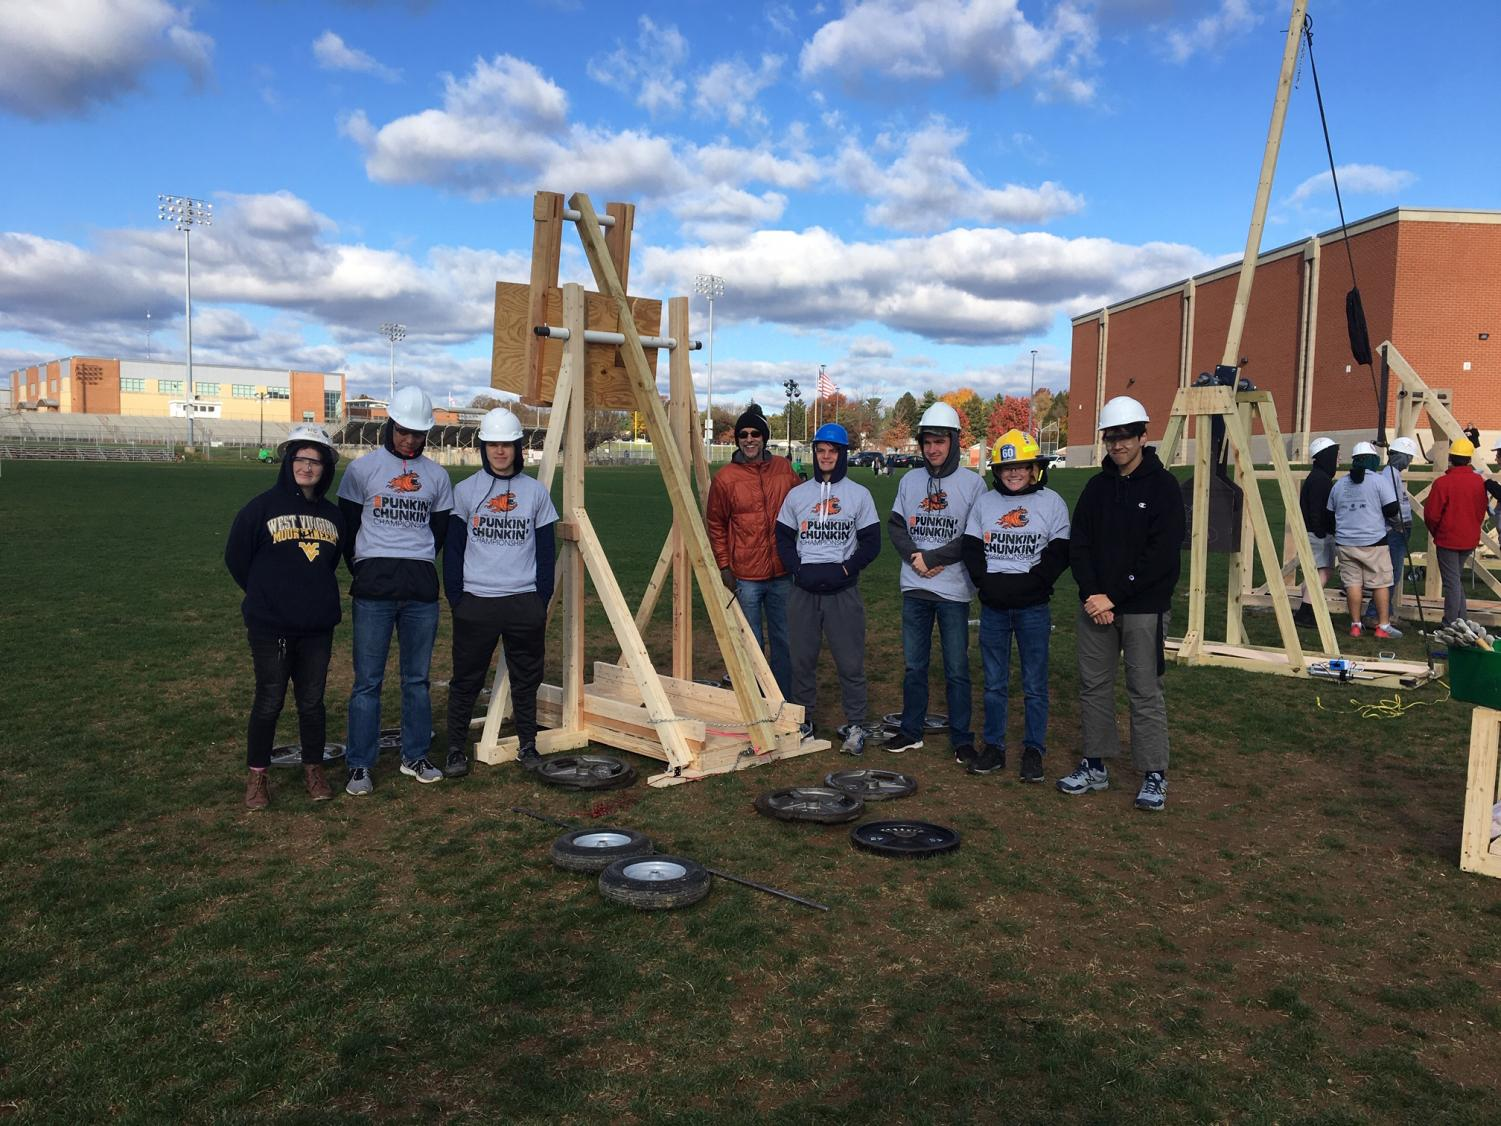 The SHS Engineering team of Eric Schwanke, Andrew Roberts, Chris Moss, Andrew Beamesderfer, Jake Eden, Ben Knepper, and Lucy Mettee traveled to West York High School on Friday to compete in the York County Punkin' Chunkin' Championship. Photograph by James Rayburn